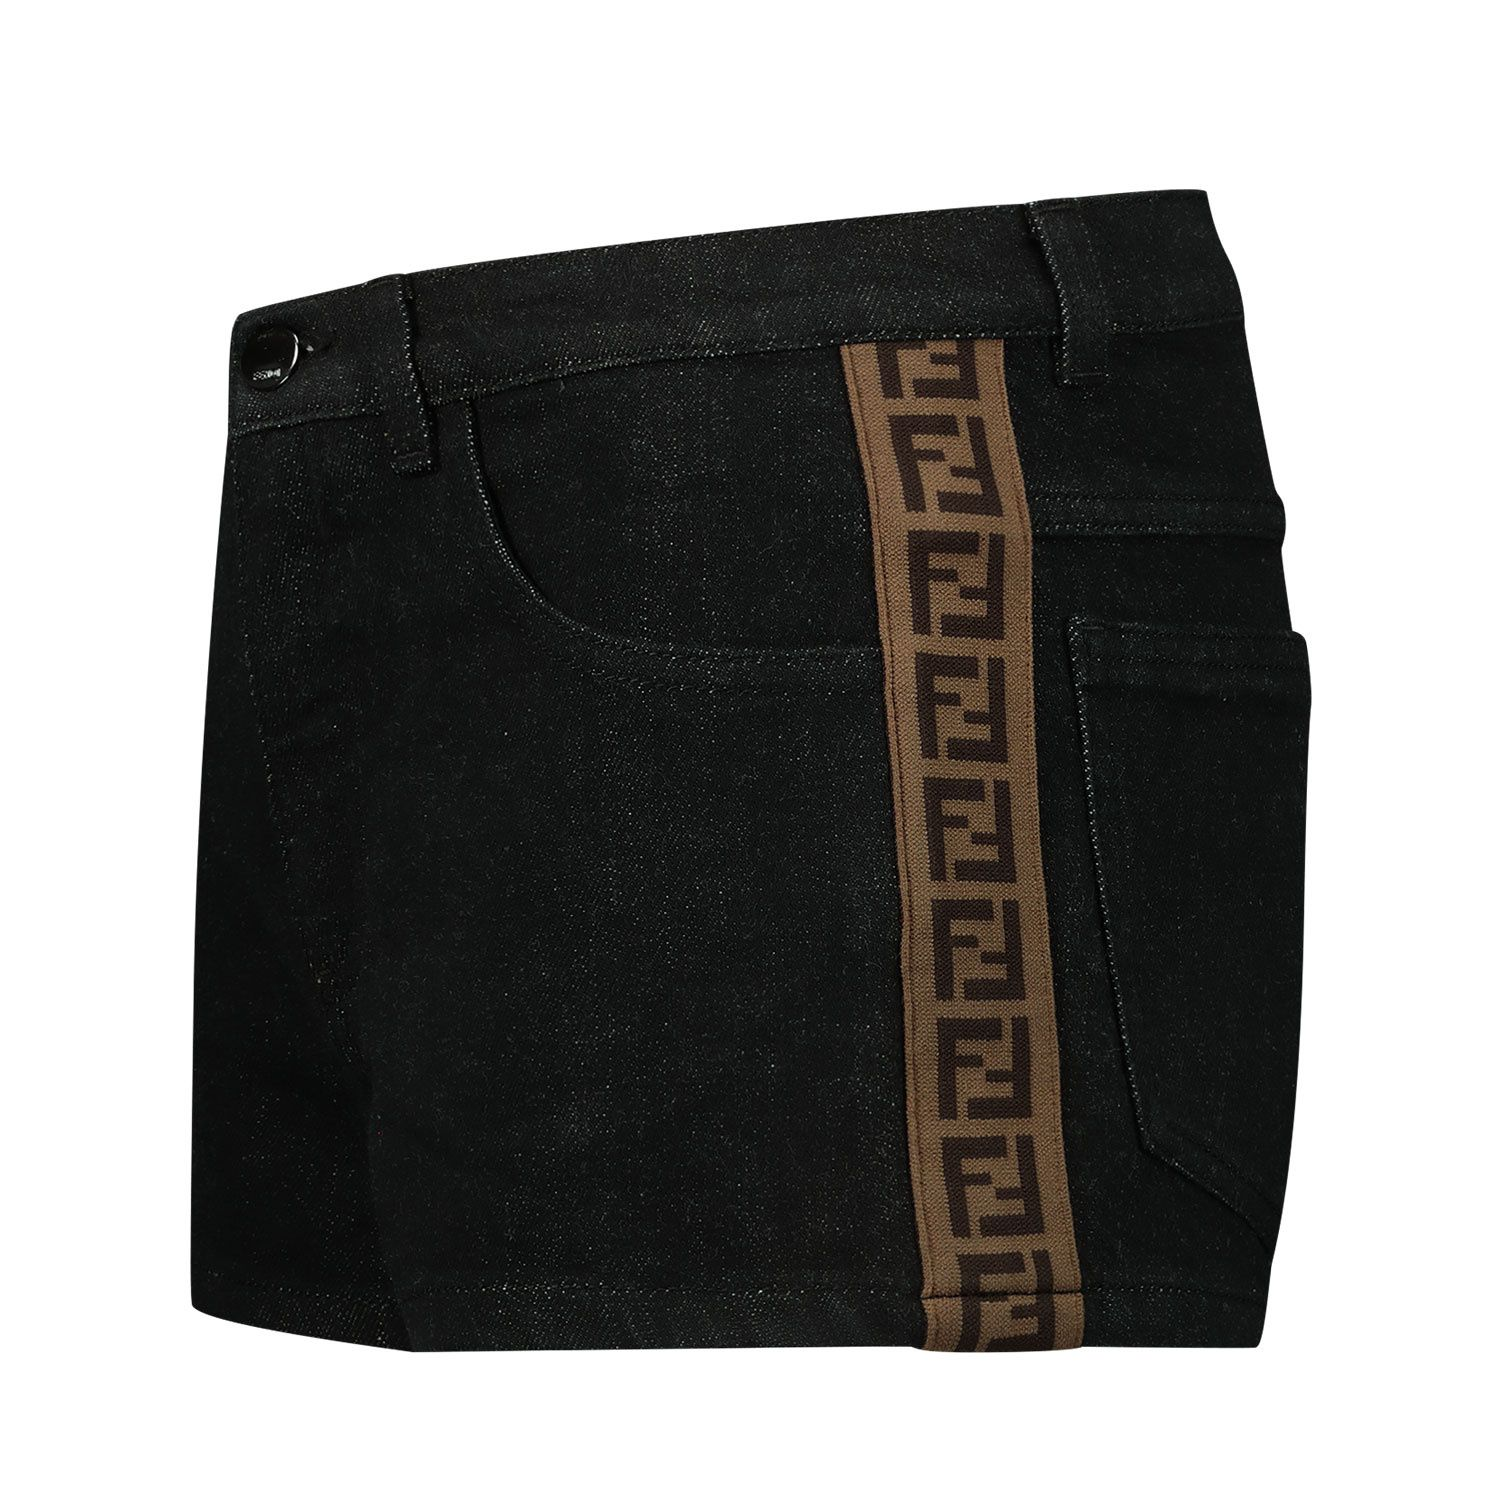 Picture of Fendi JFF224 AEXN kids shorts black